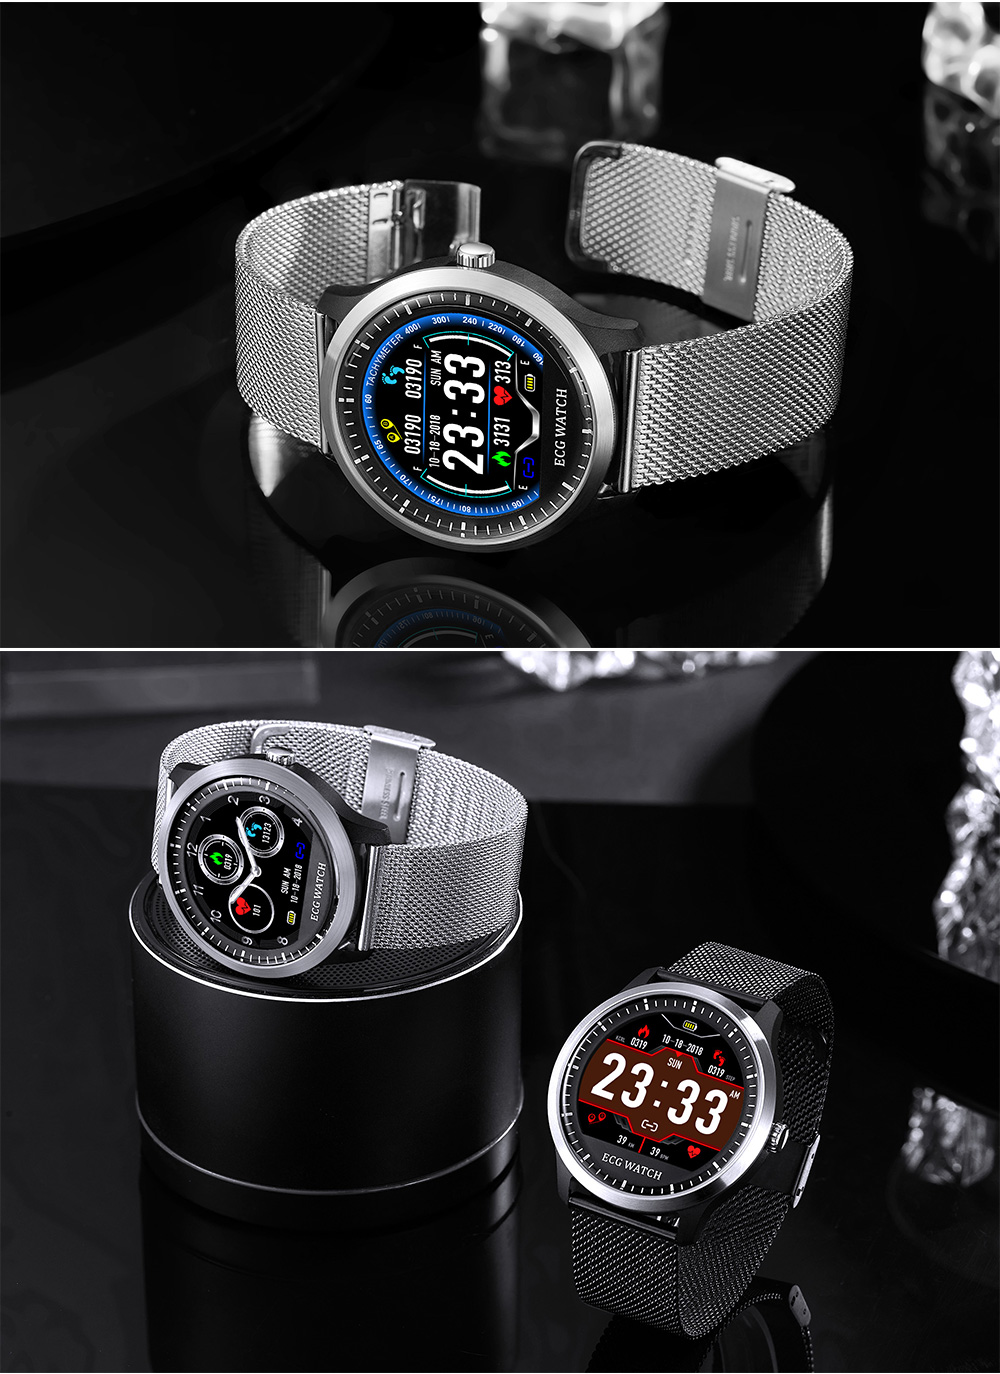 LEMFO N58 ECG PPG Smart watch men women with electrocardiograph ecg display holter ecg heart rate monitor blood pressure smartwatch Fitness bracelet (11)